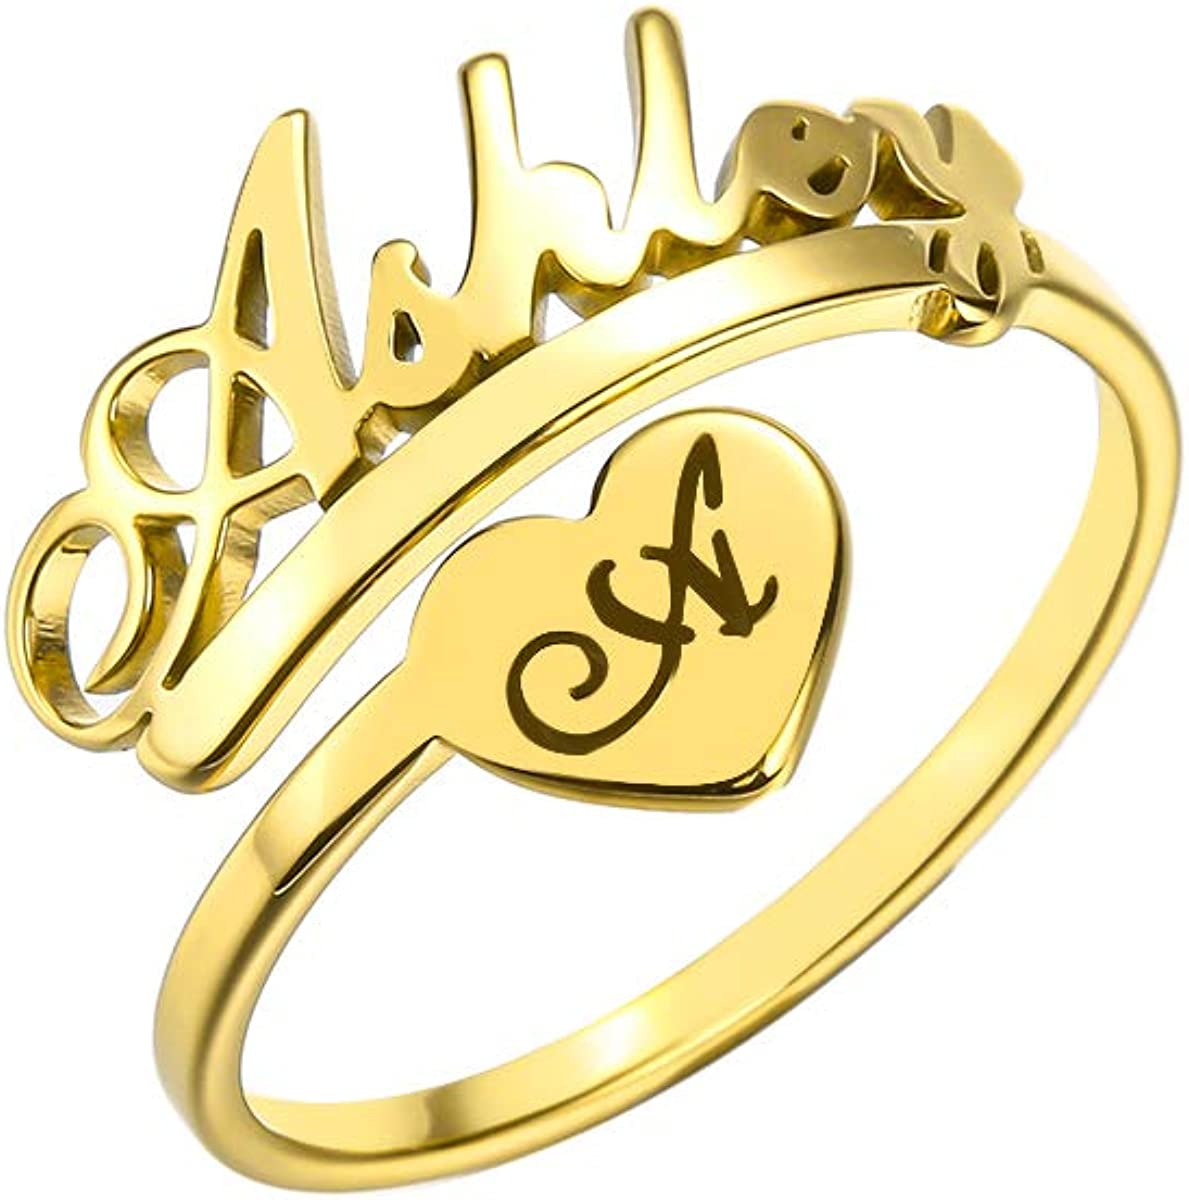 CHUANGYUN Custom Name Rings for Women Engagement Birthday Gift Any Name Customized